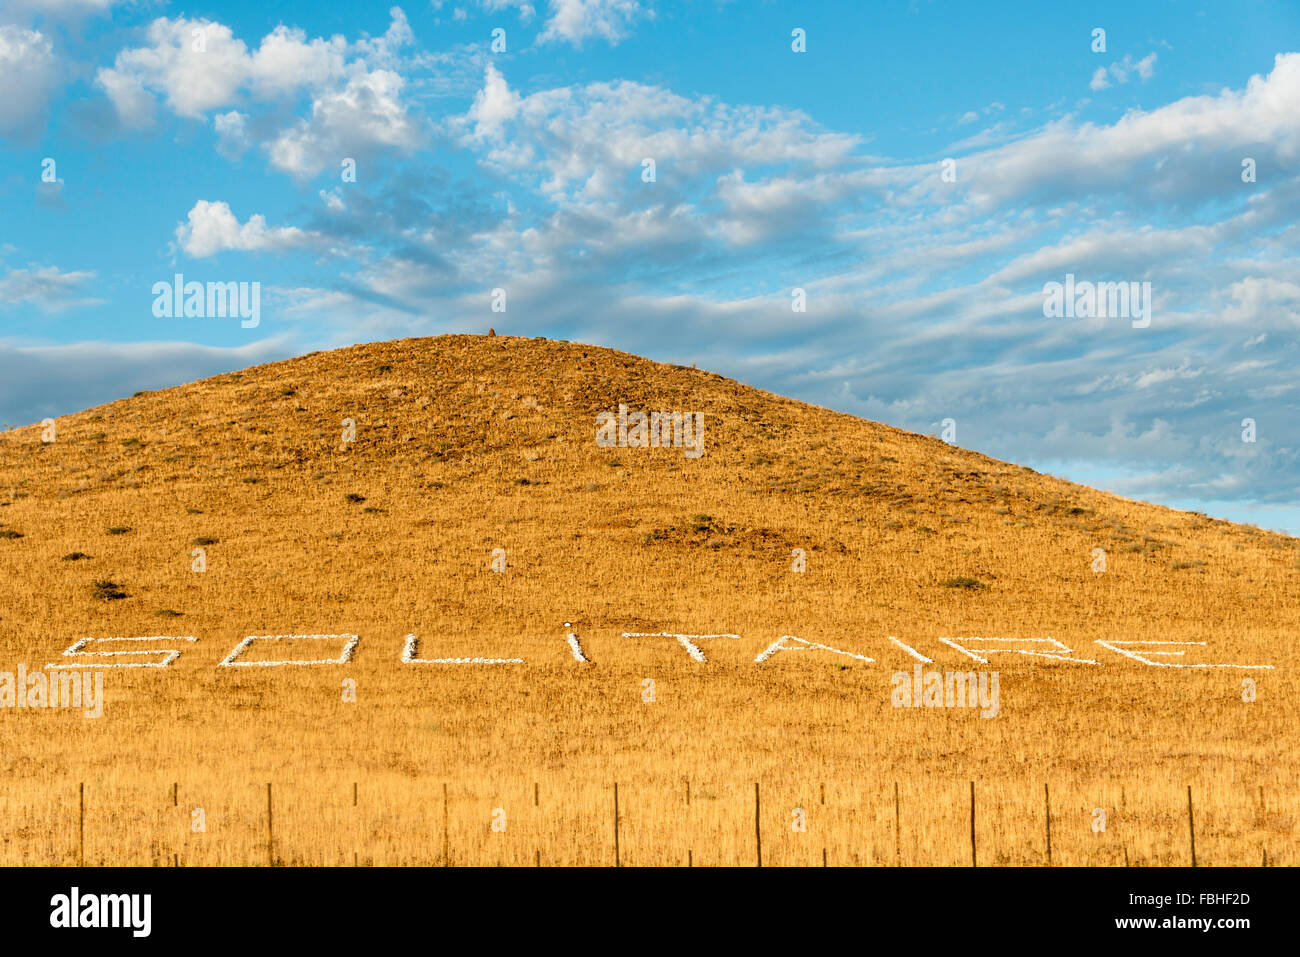 Hillside town sign, Solitaire, Namib Naukluft Park, Namib Desert, Republic of Namibia - Stock Image